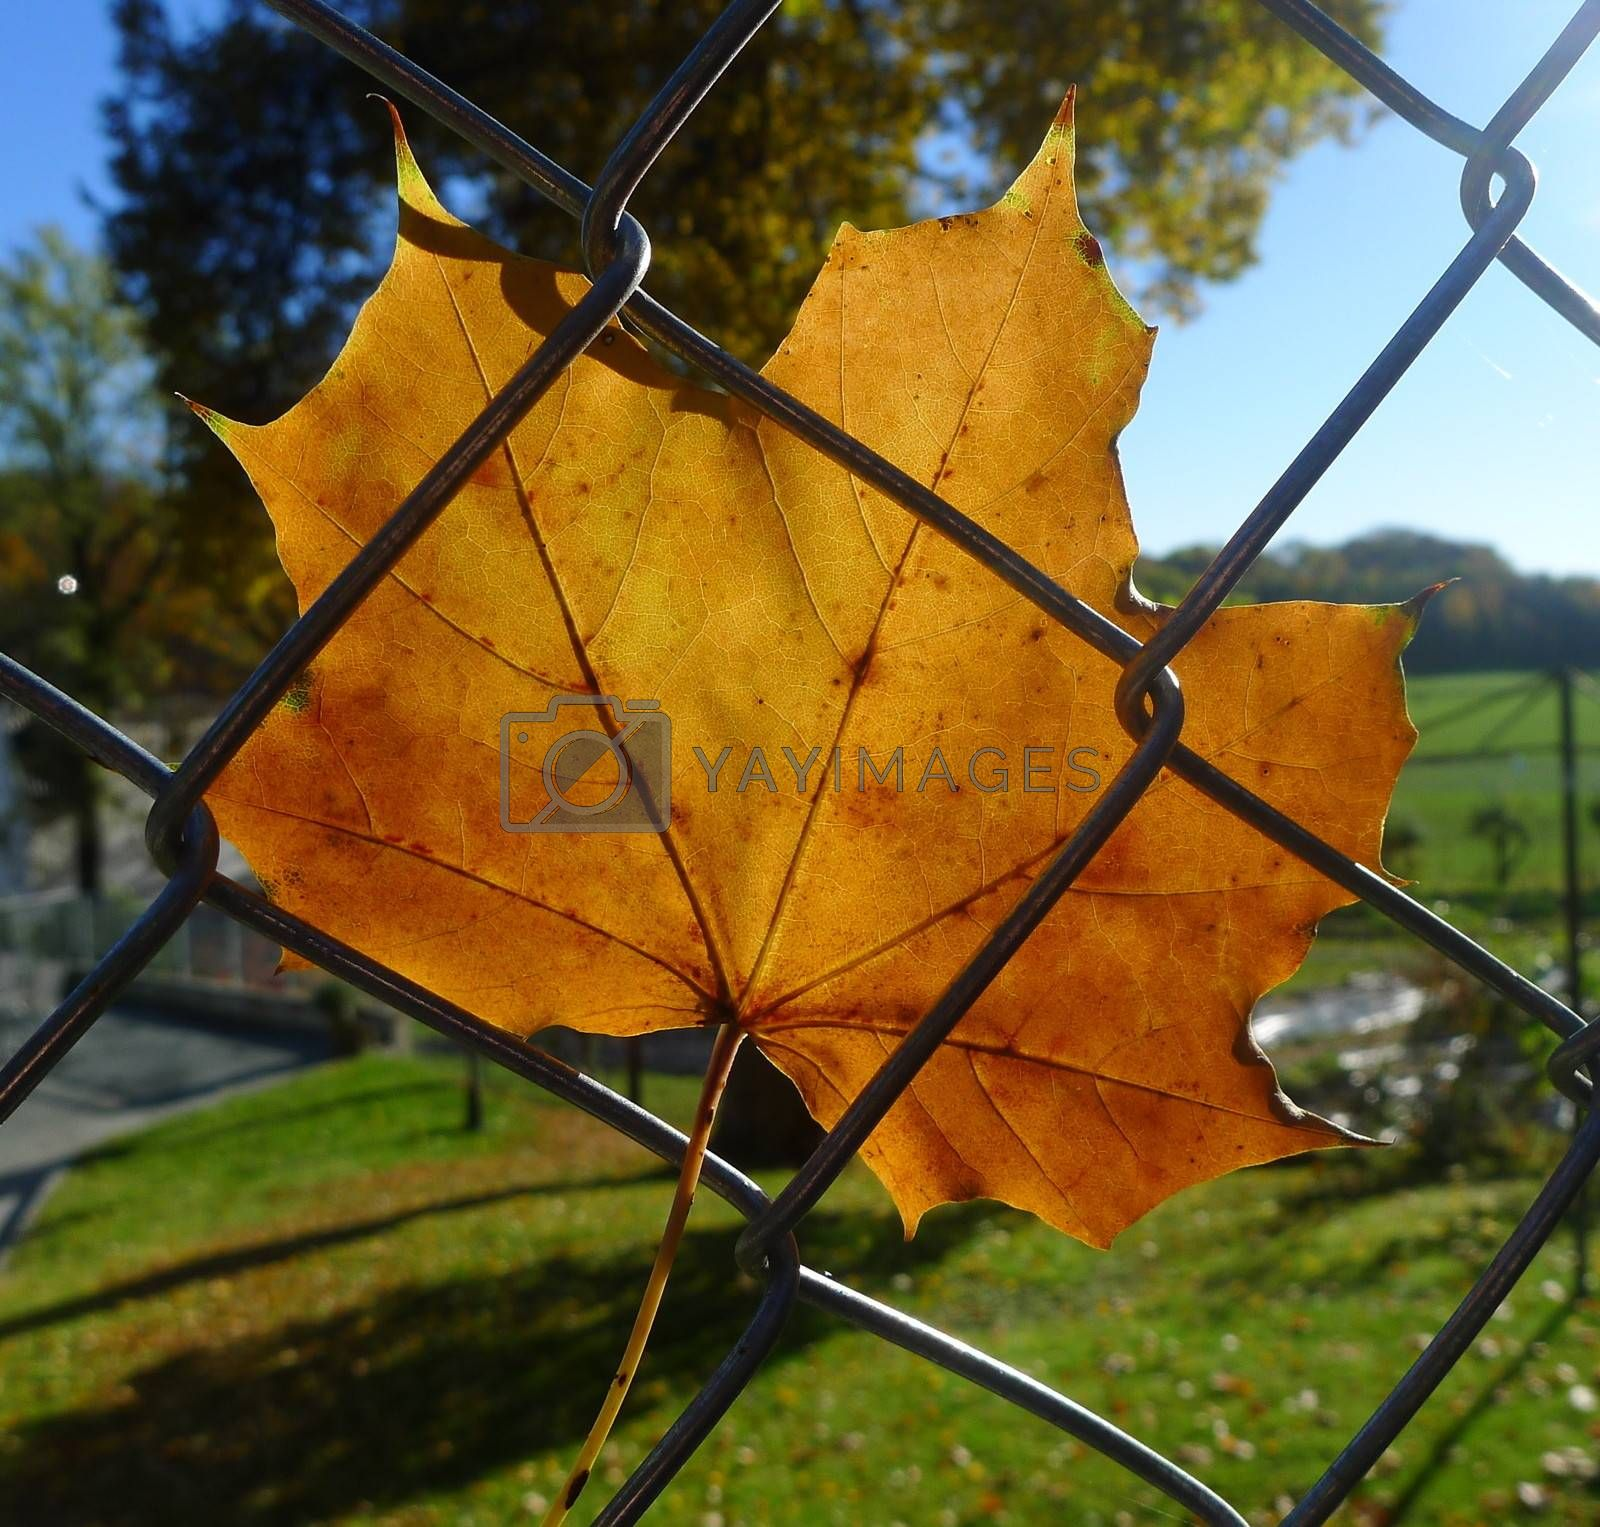 Autumn leaf on fence